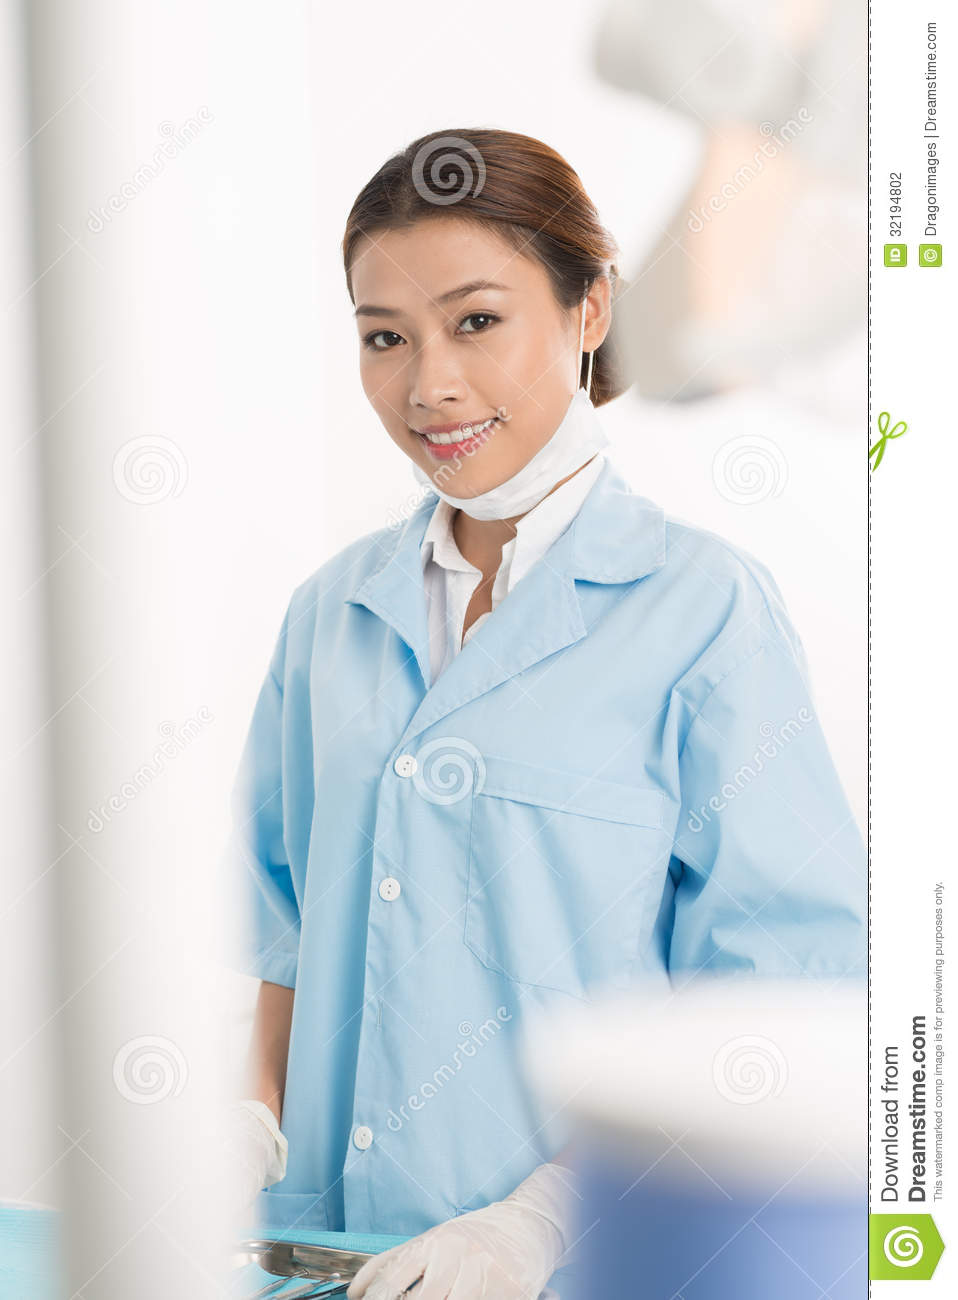 Young Intern Stock Photo. Image Of Looking, Gloved, Glance